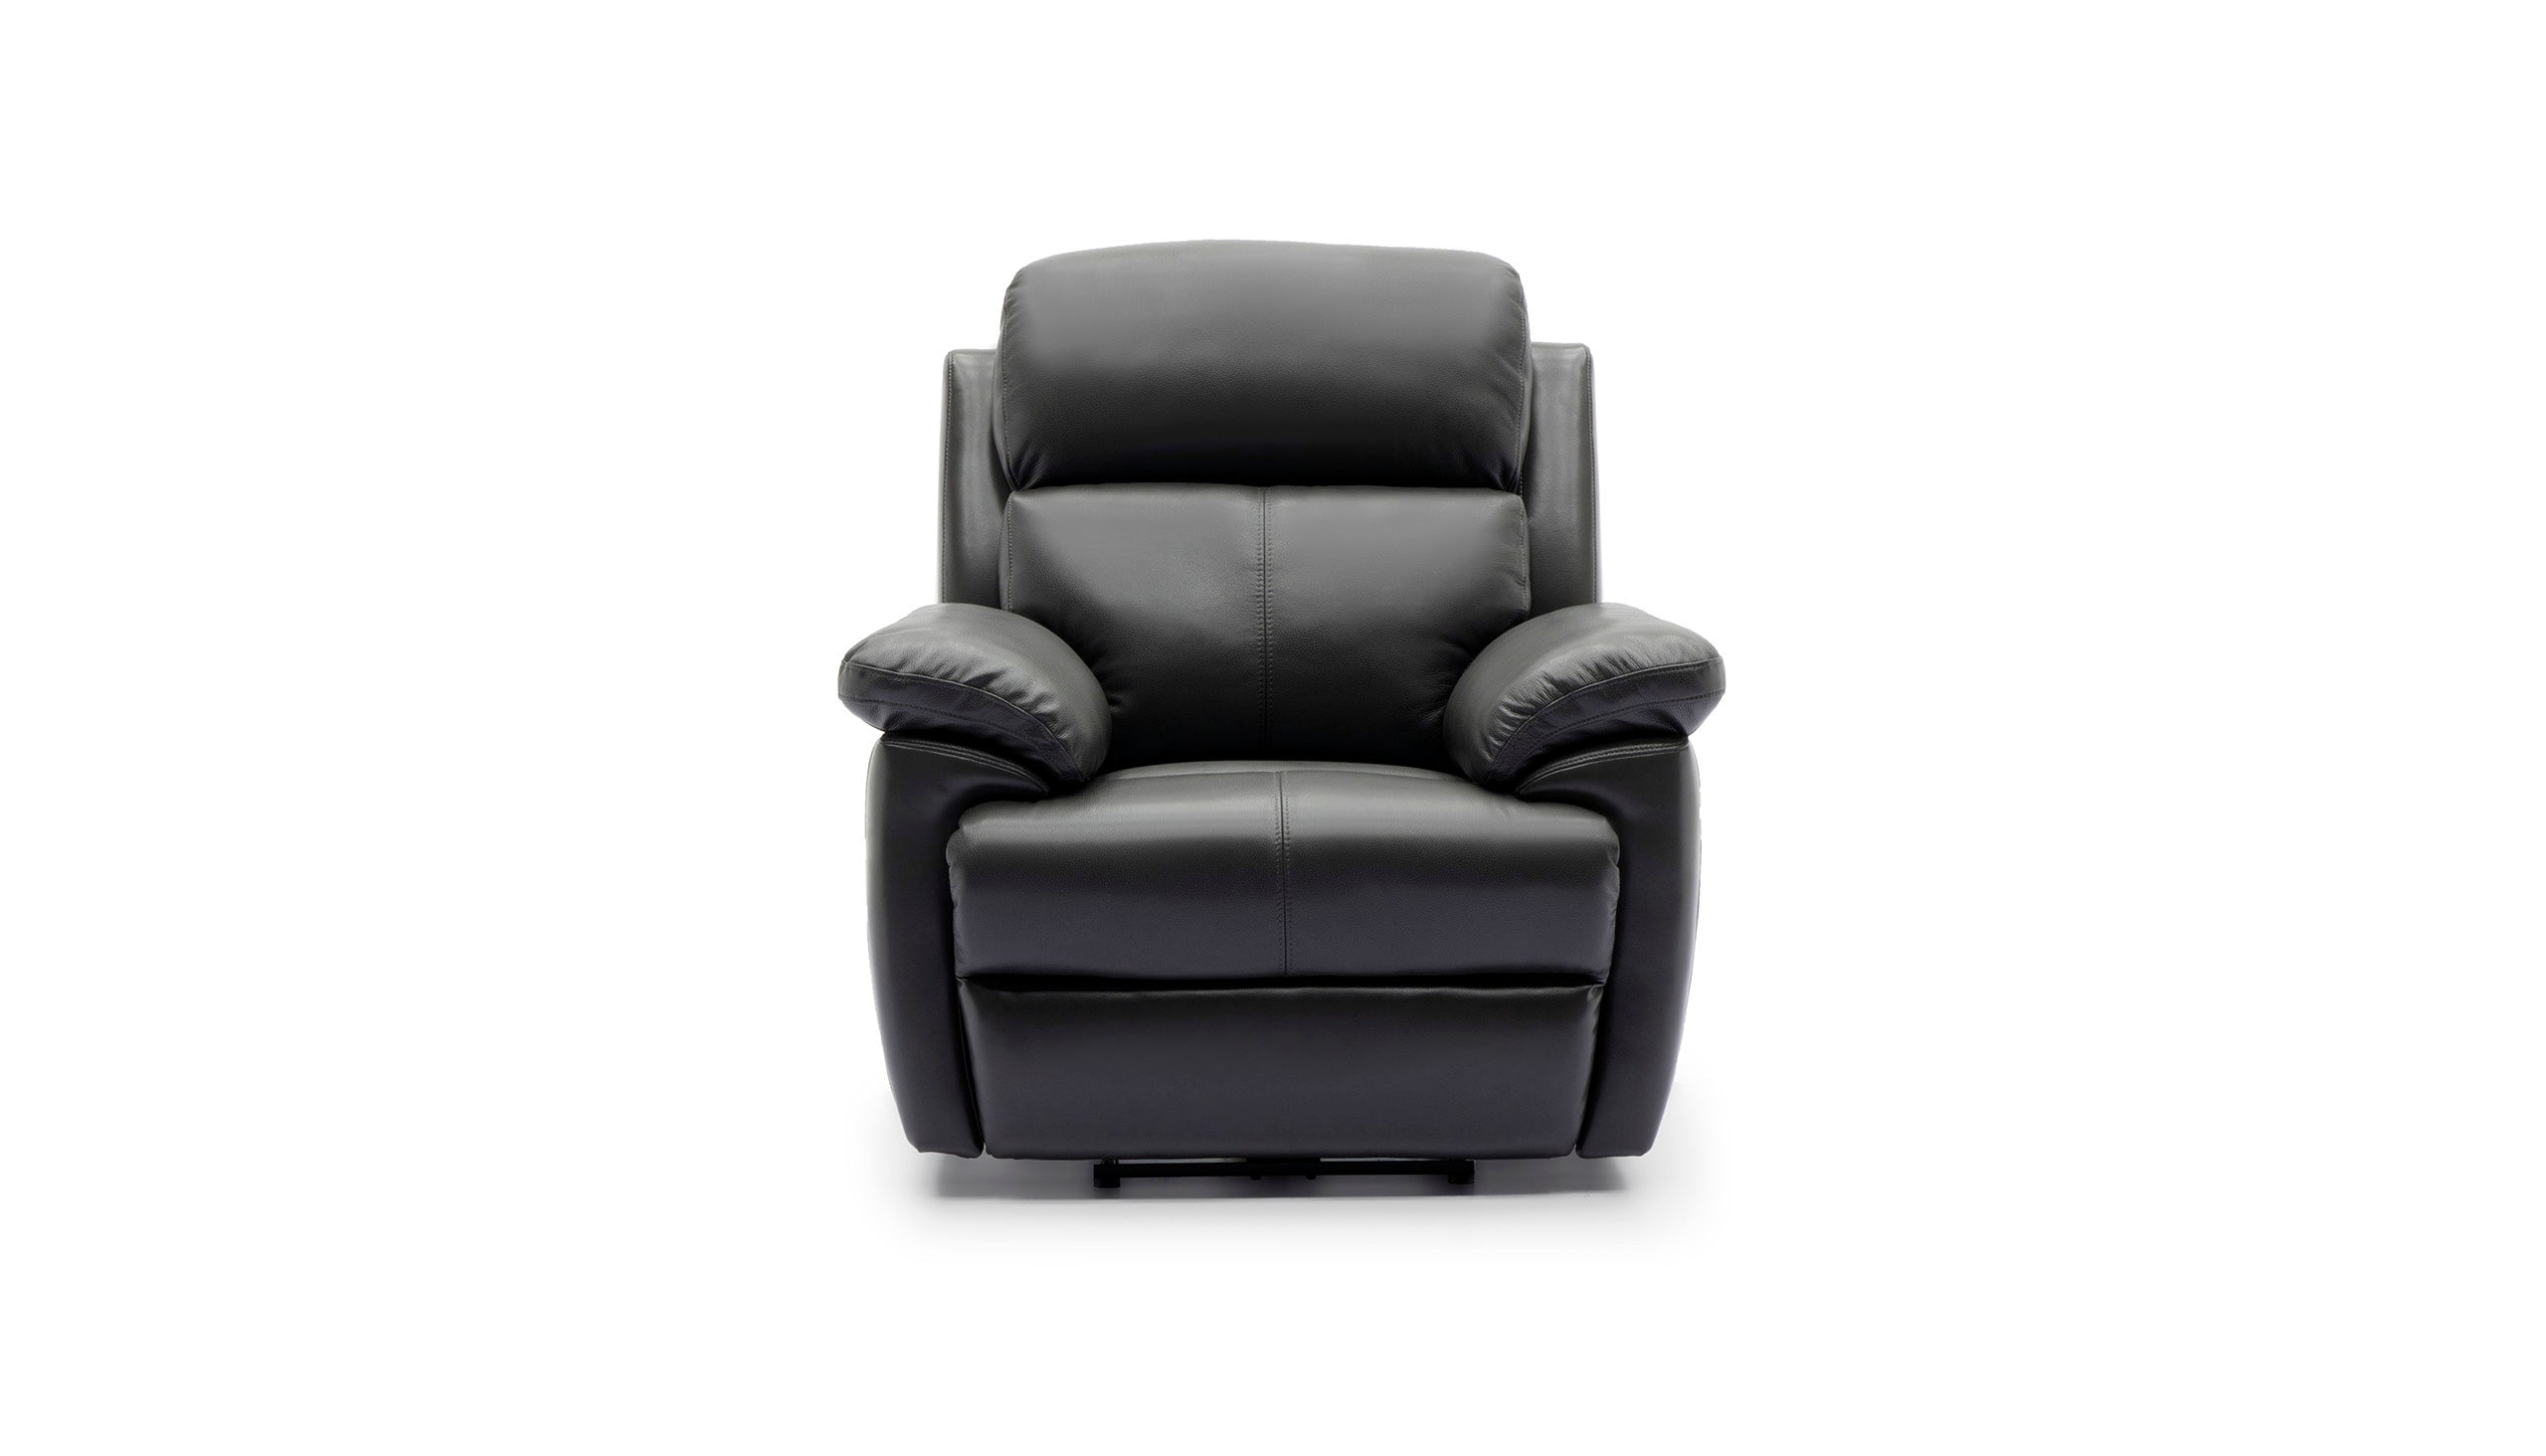 Blair Manual Recliner Armchair